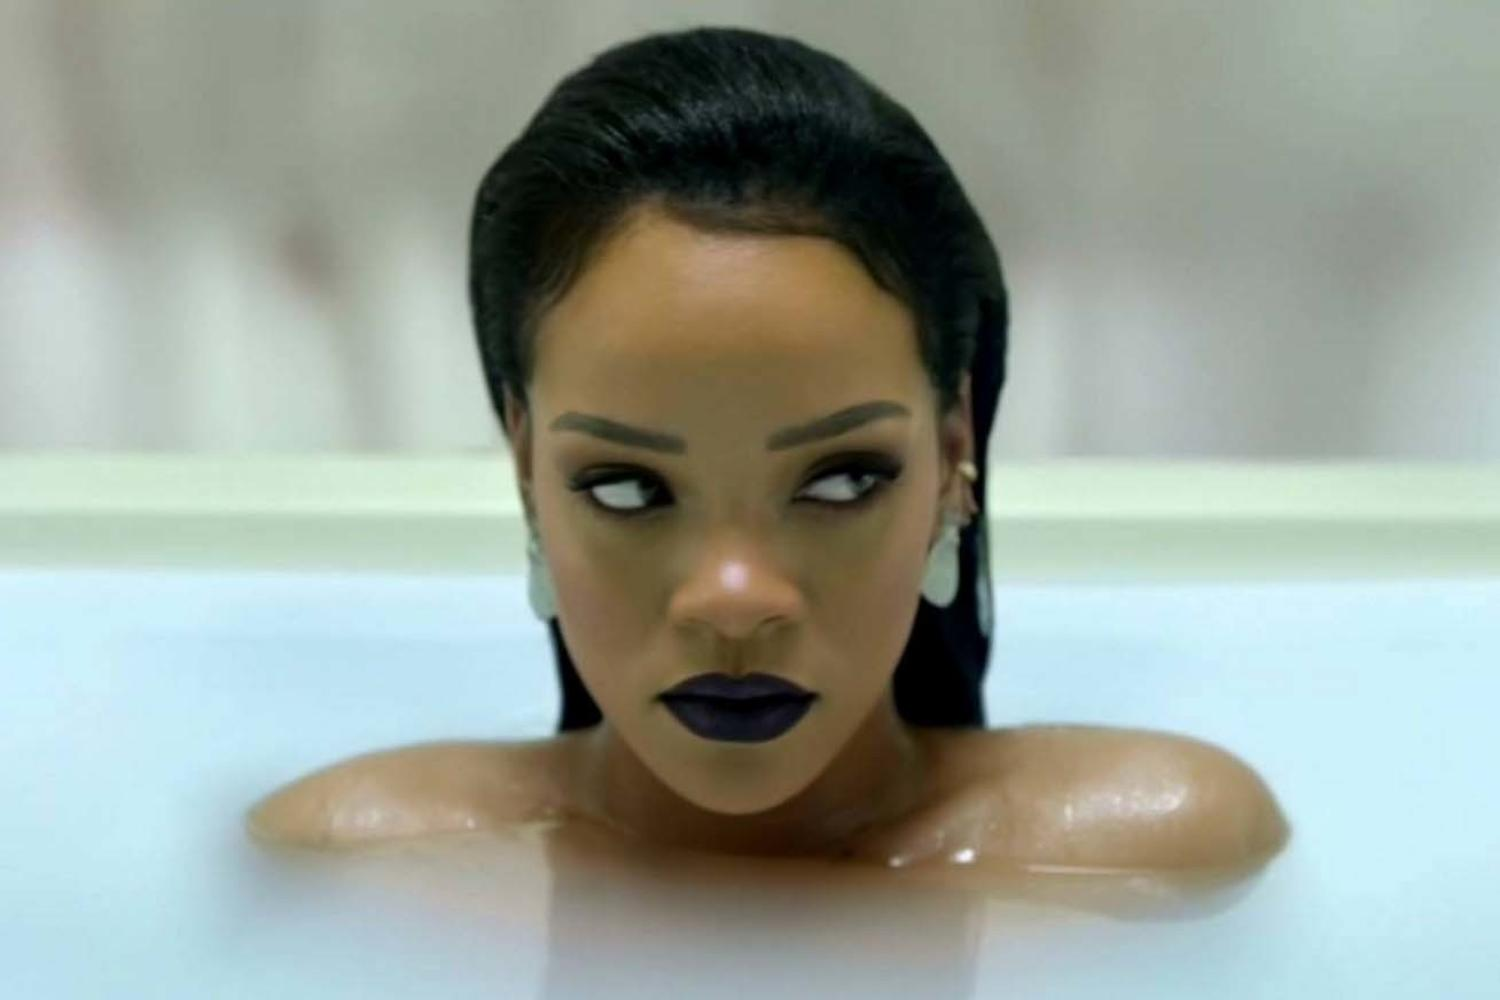 Tracks: Rihanna, Katy B, & More